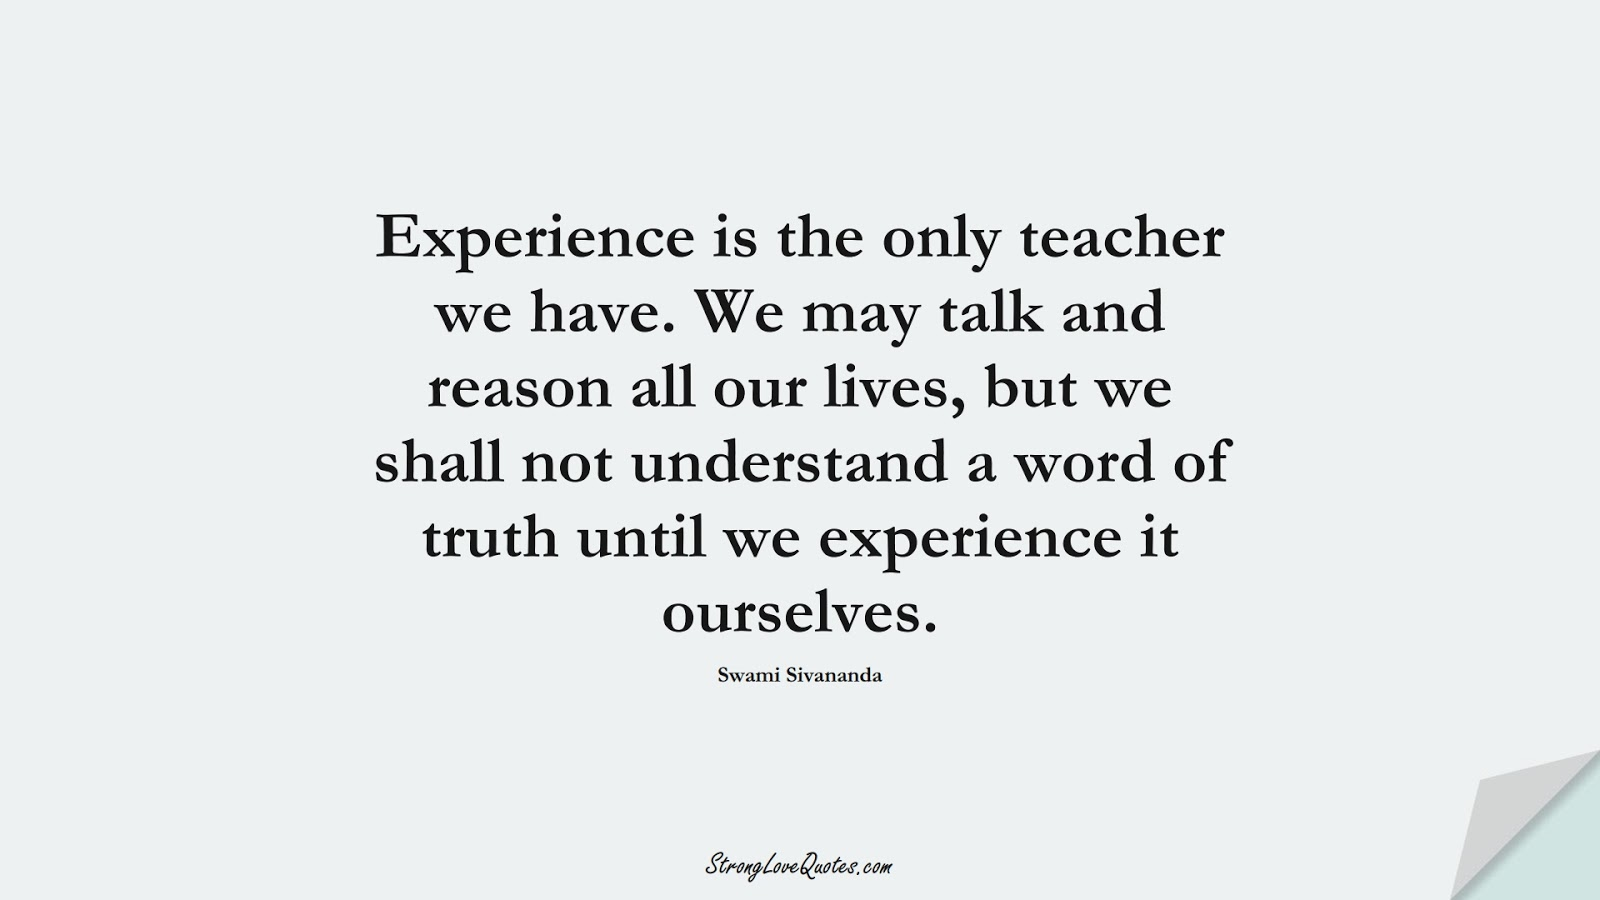 Experience is the only teacher we have. We may talk and reason all our lives, but we shall not understand a word of truth until we experience it ourselves. (Swami Sivananda);  #EducationQuotes